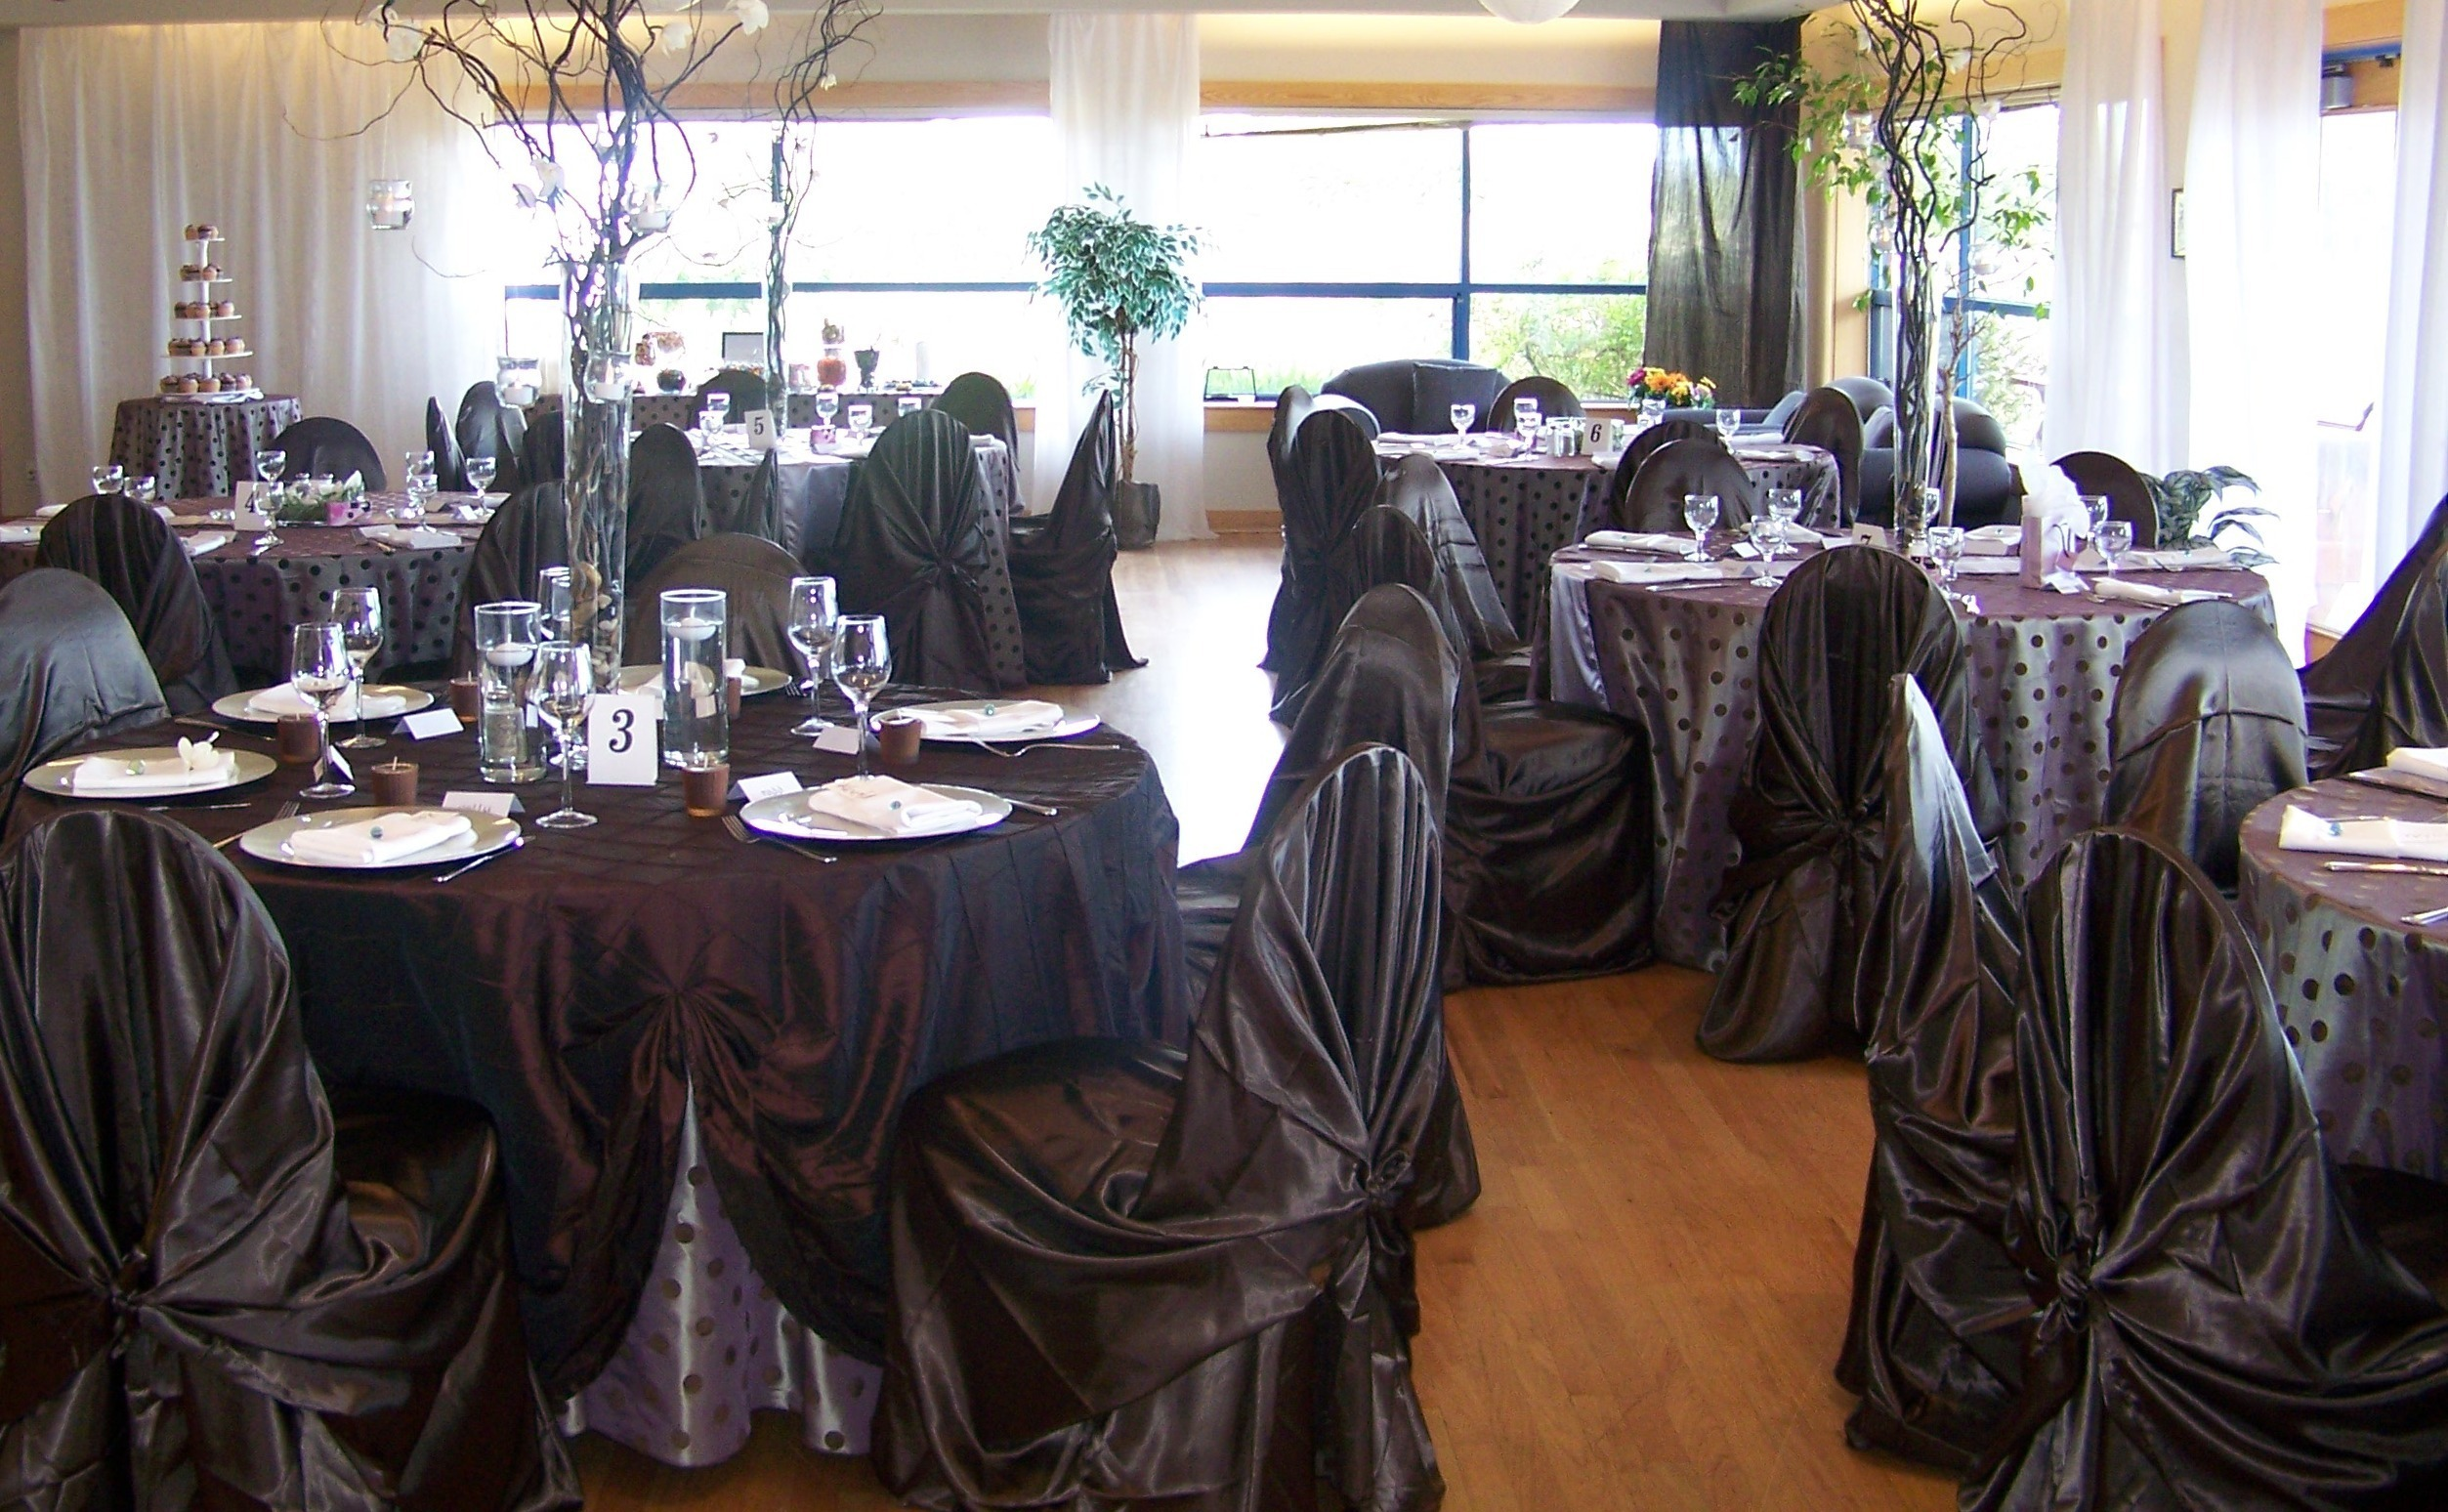 Centerpiece, Chair, Treatment, Linens, Covers, Ceiling, Watkins event decor